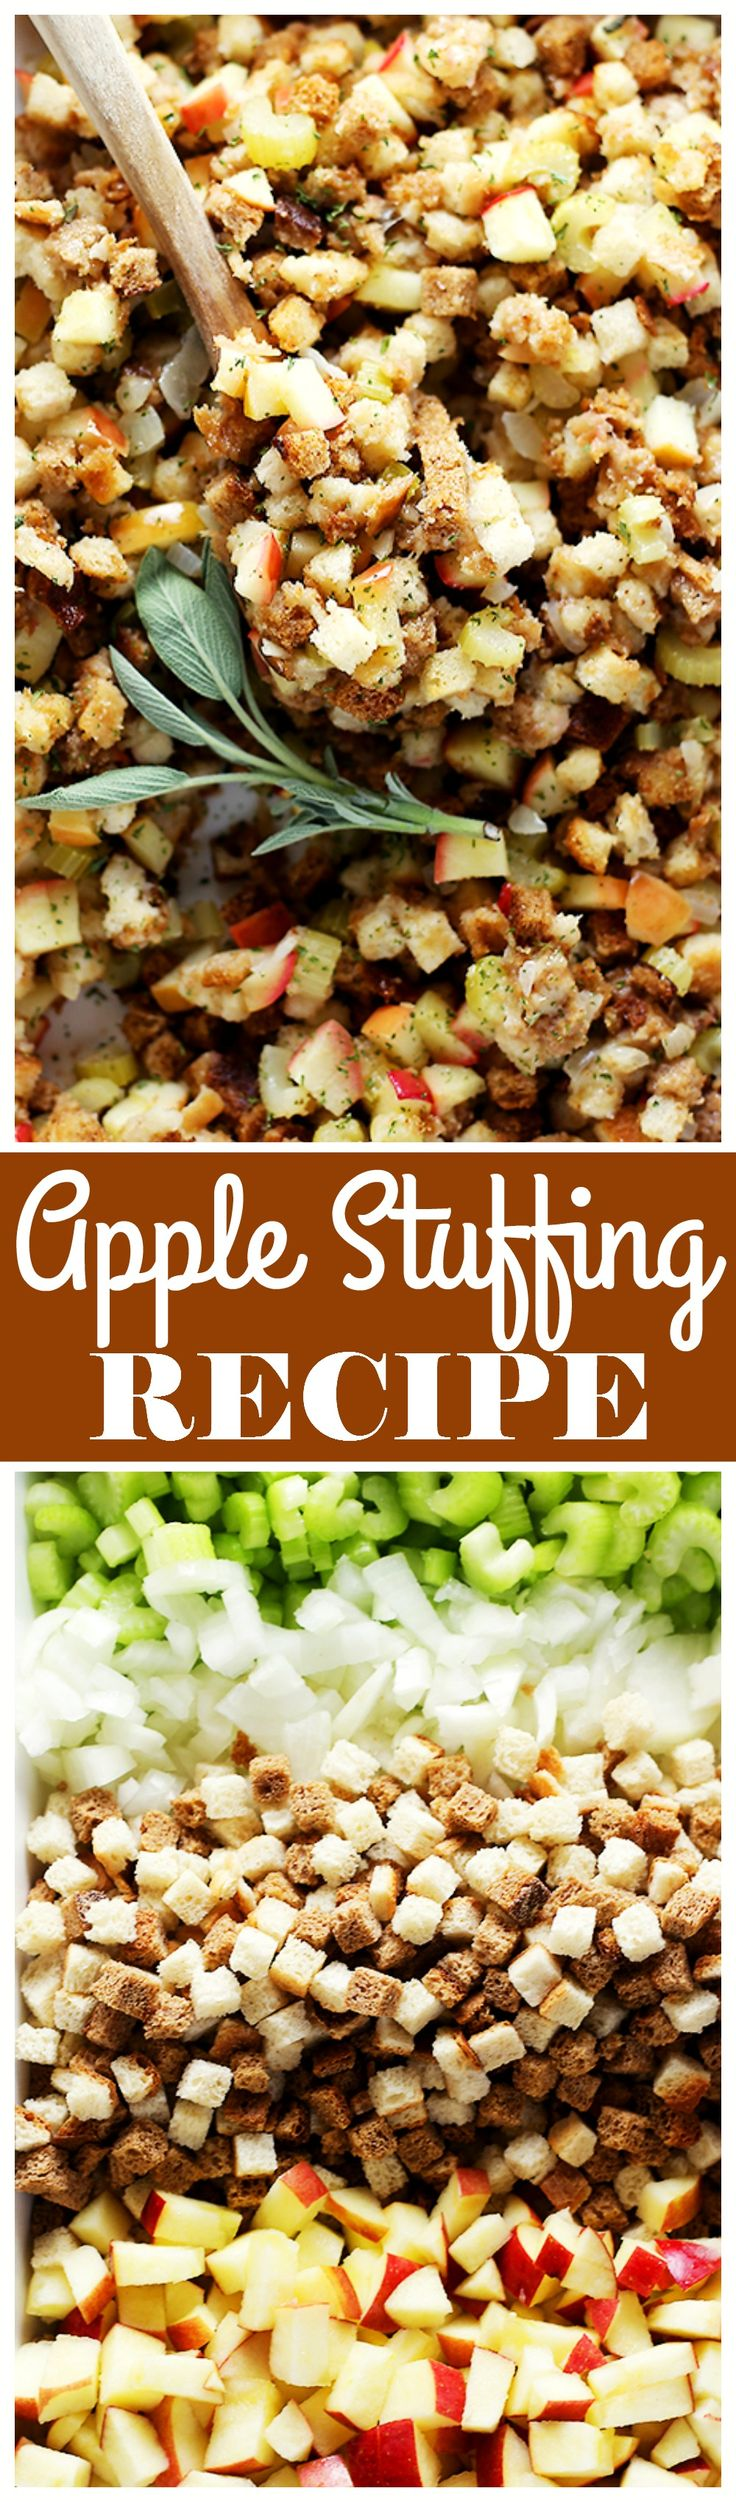 Easy Apple Stuffing Recipe – Very delicious, easy to make turkey stuffing with apples, bread cubes and herbs. Get the recipe at diethood.com